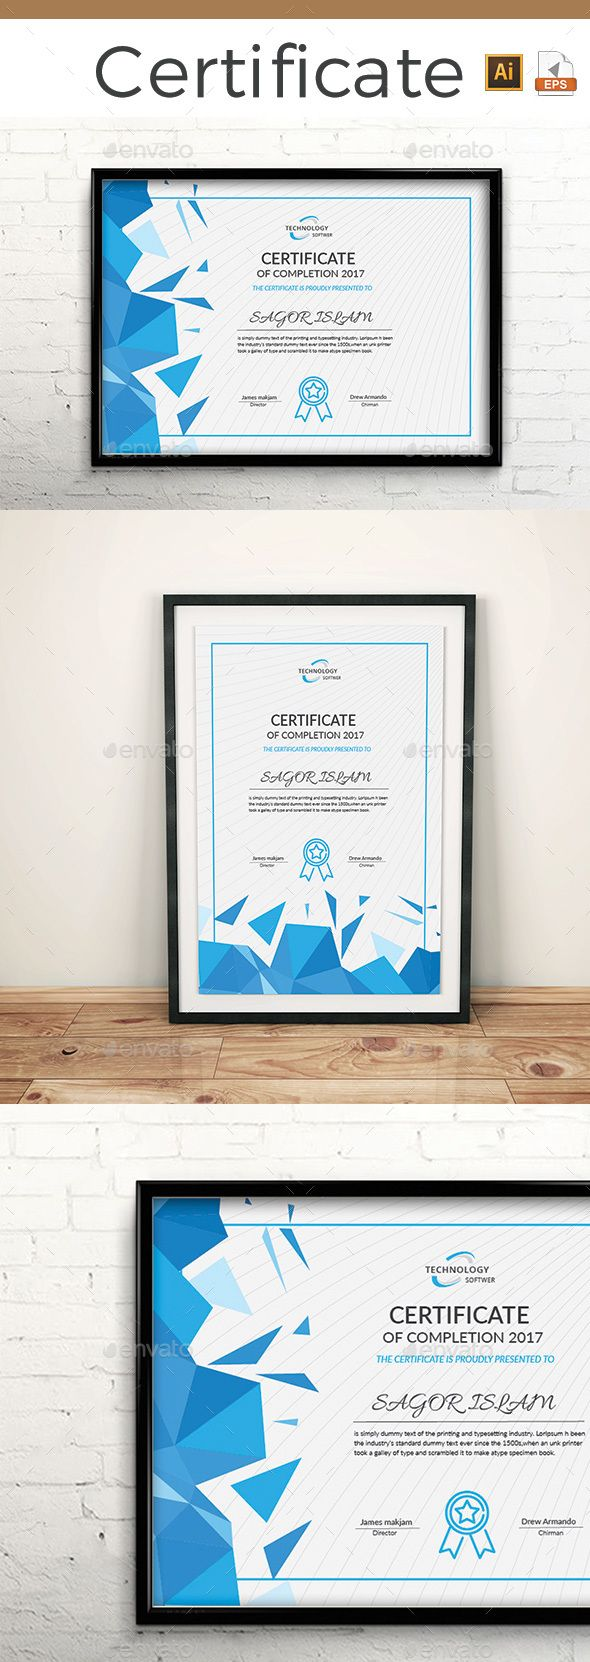 #Certificate - Certificates #Stationery Download here: https://graphicriver.net/item/certificate/19993374?ref=alena994